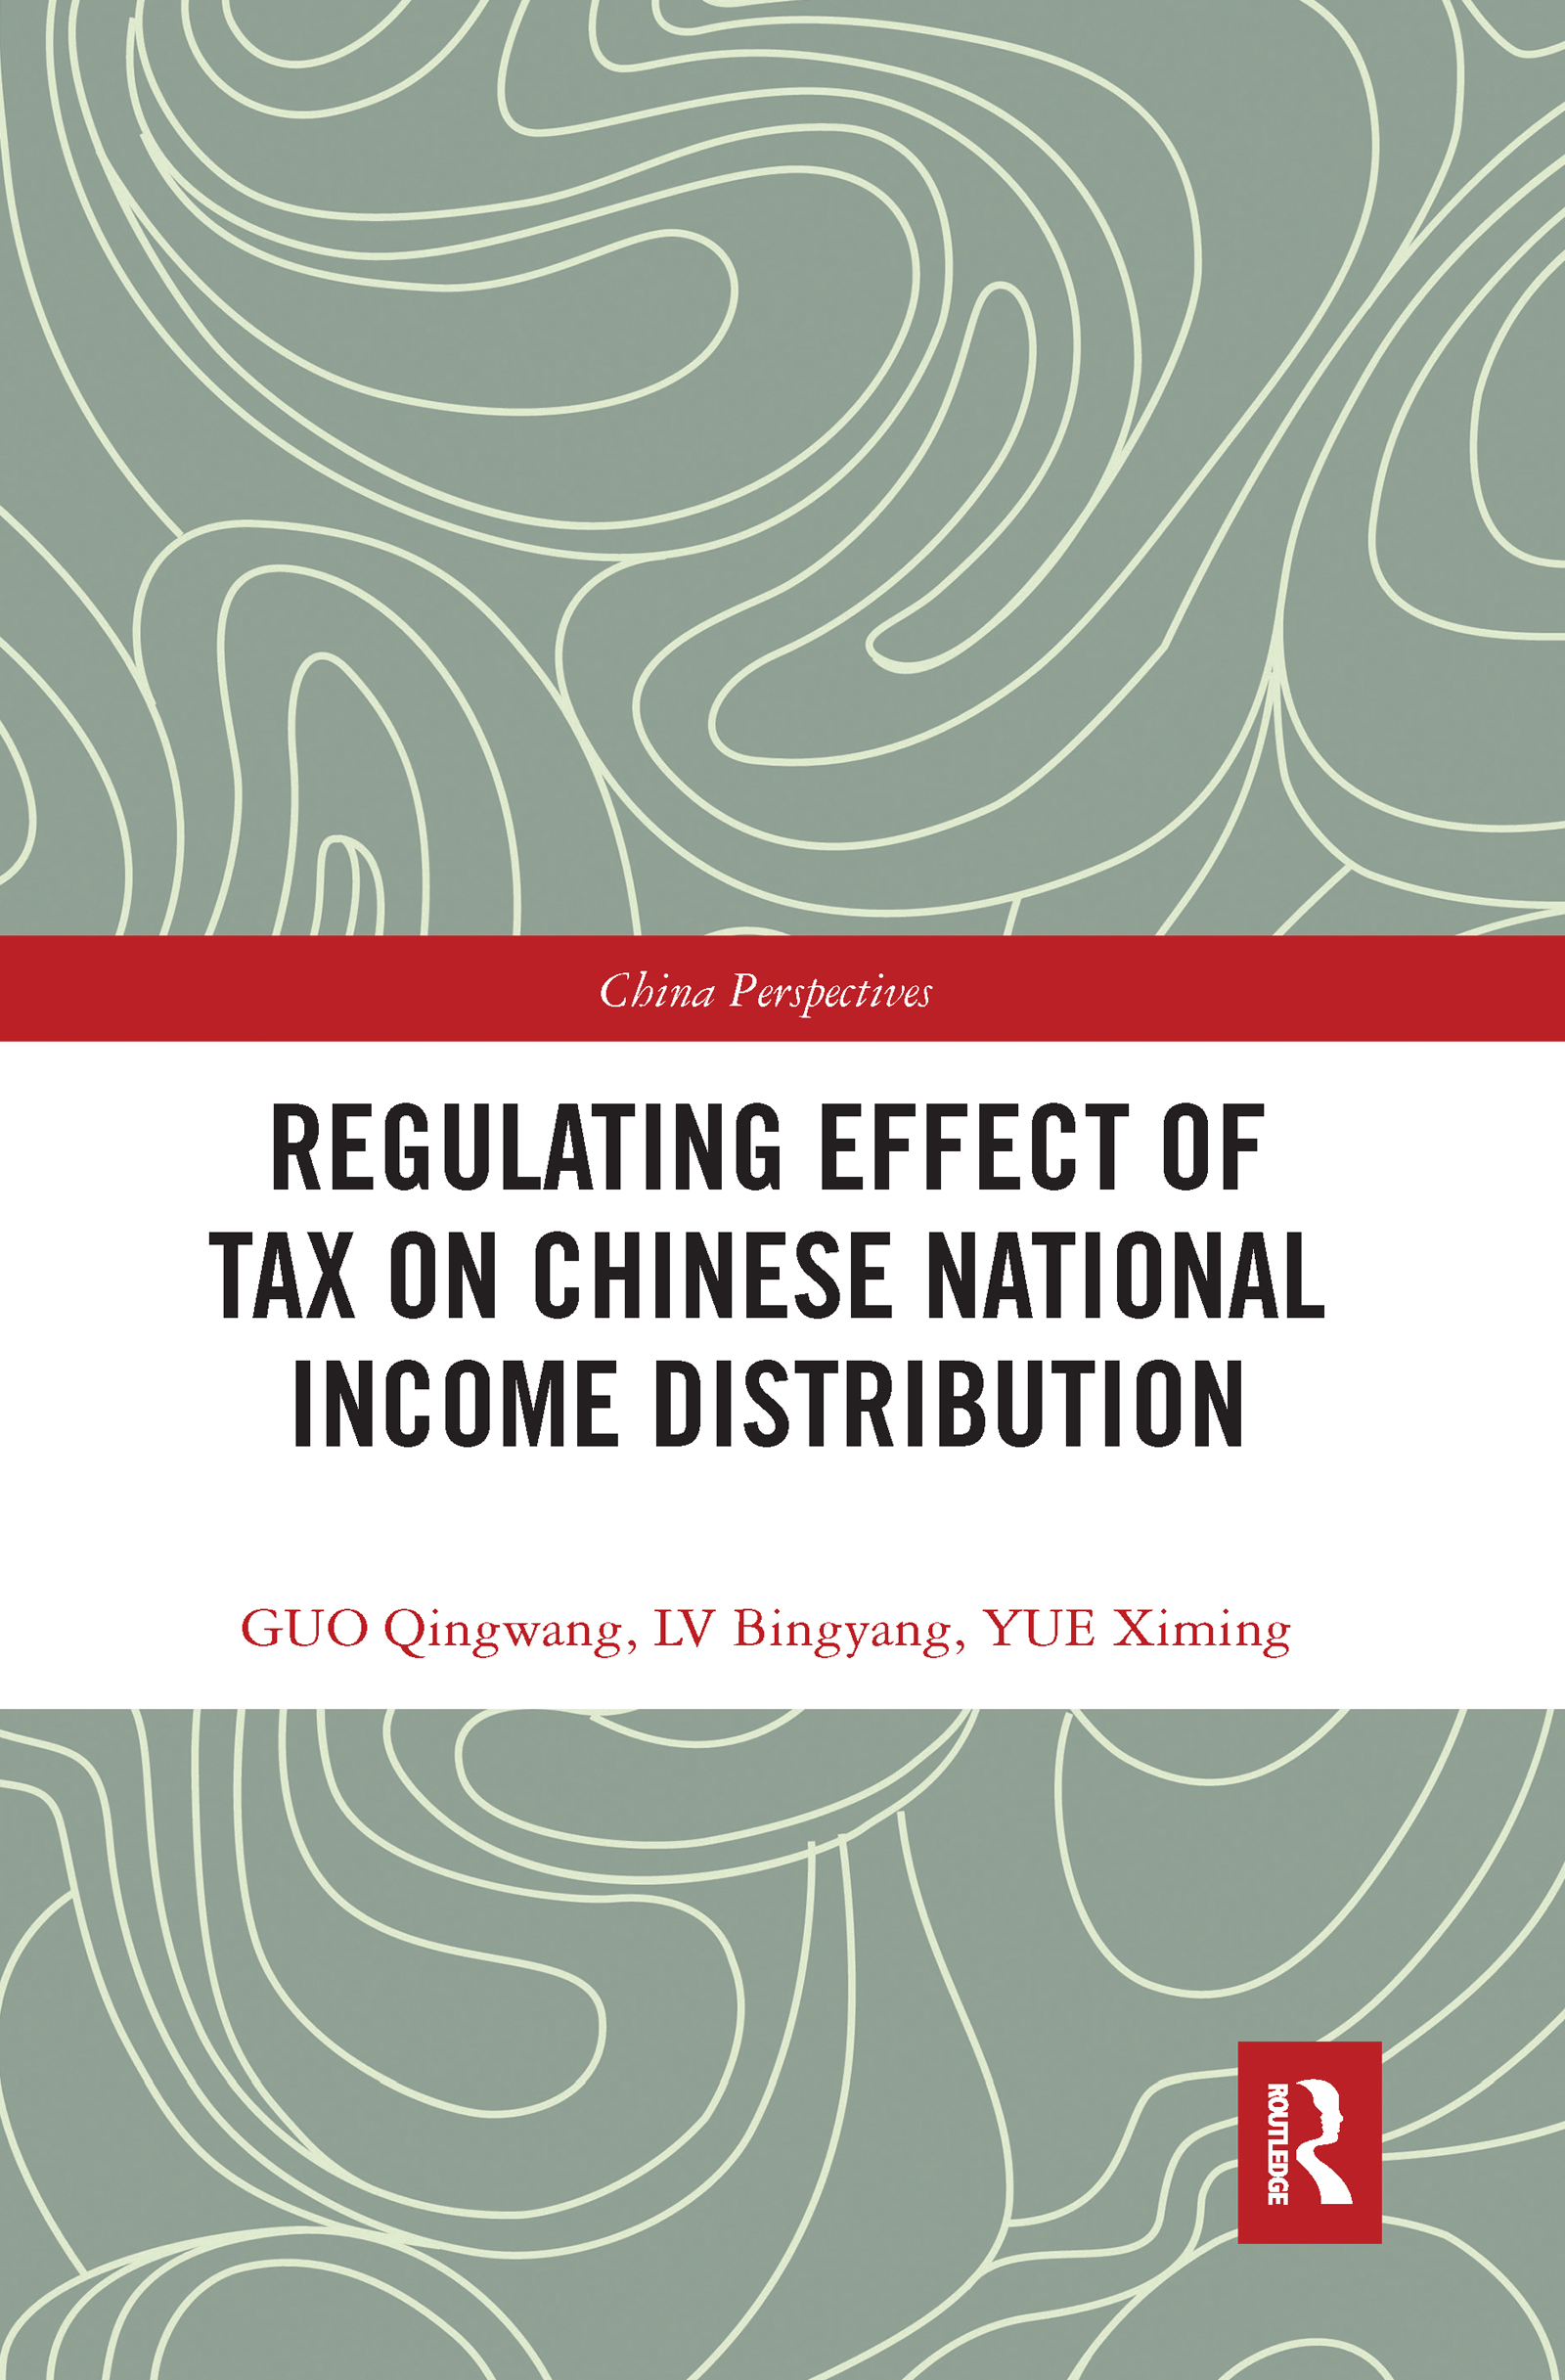 Regulating Effect of Tax on Chinese National Income Distribution